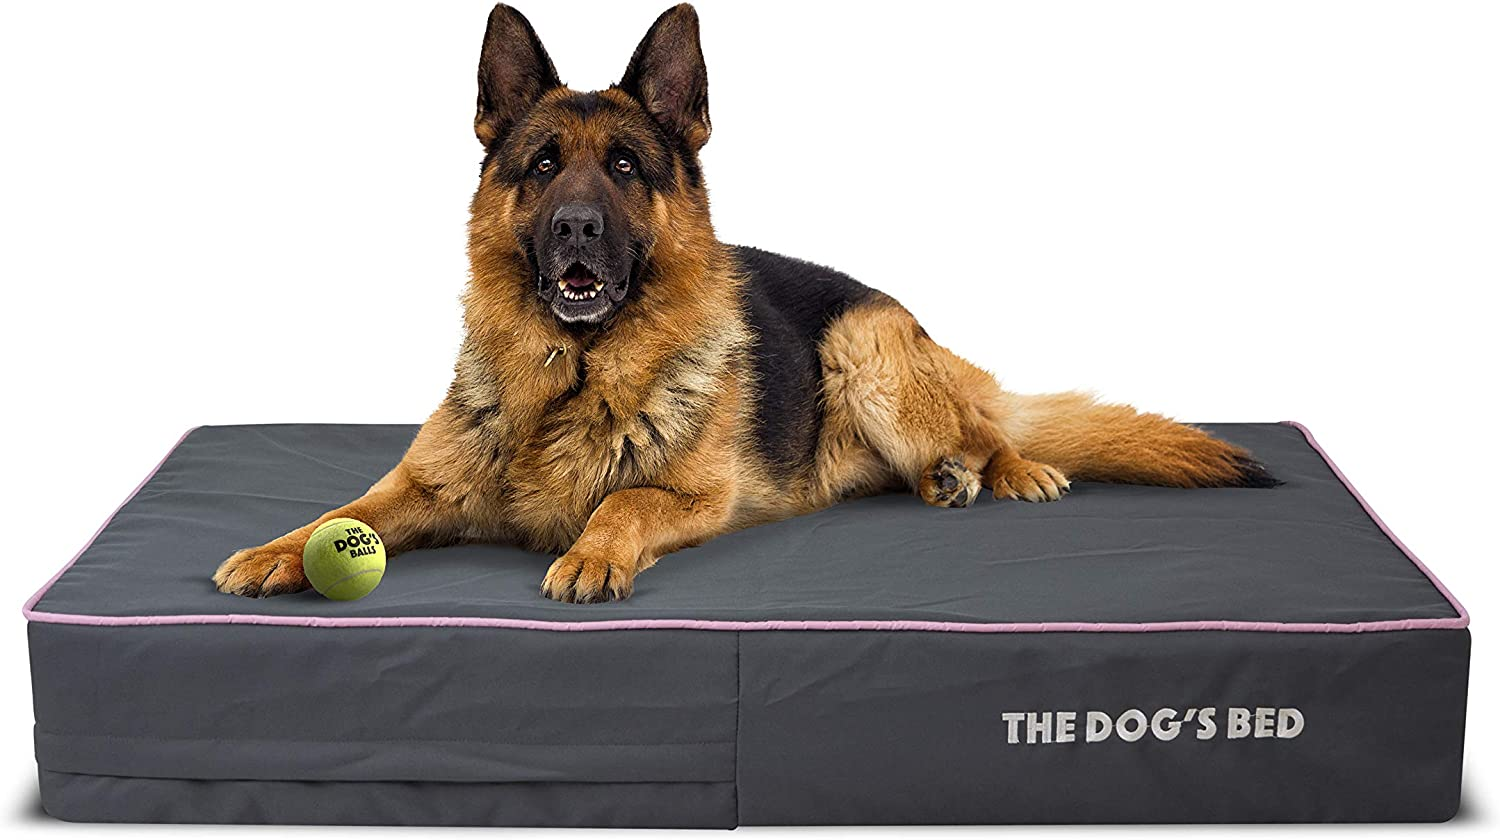 OUTER COVER ONLY - NO BED, NO WATERPROOF INNER For The Dogs Bed, Washable Quality Plush Fabric, Medium 86 x 56 x 10cm Brown Plush Replacement Outer Cover ONLY